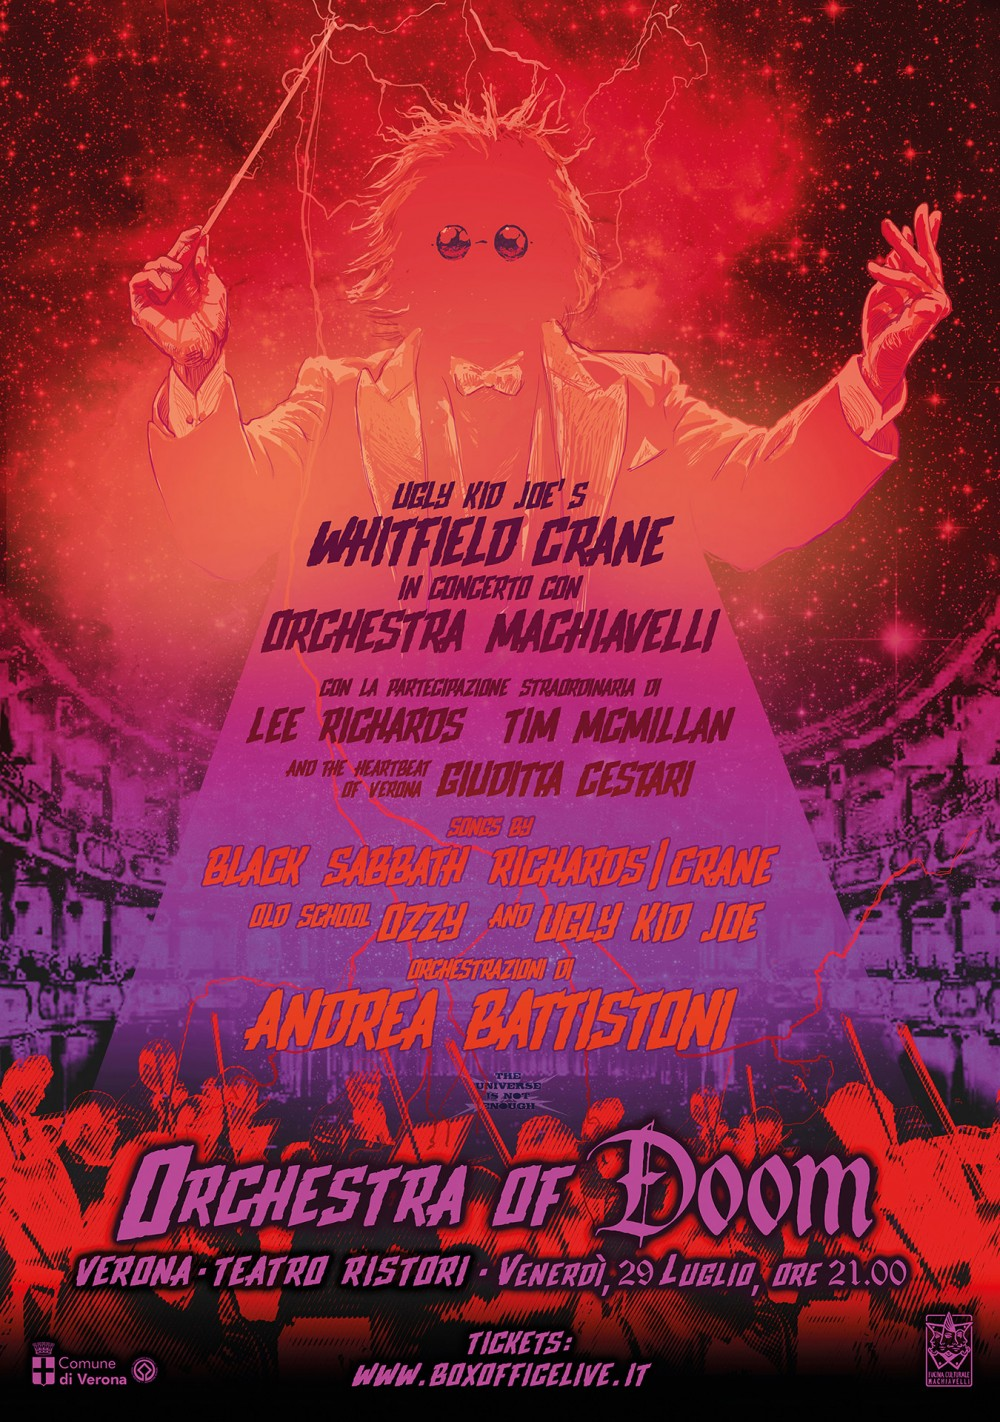 Whitfield Crane and Orchestra Machiavelli play Black Sabbath Richards-Crane Ozzy and Ugly Kid Joe as Orchestra of Doom in Verona